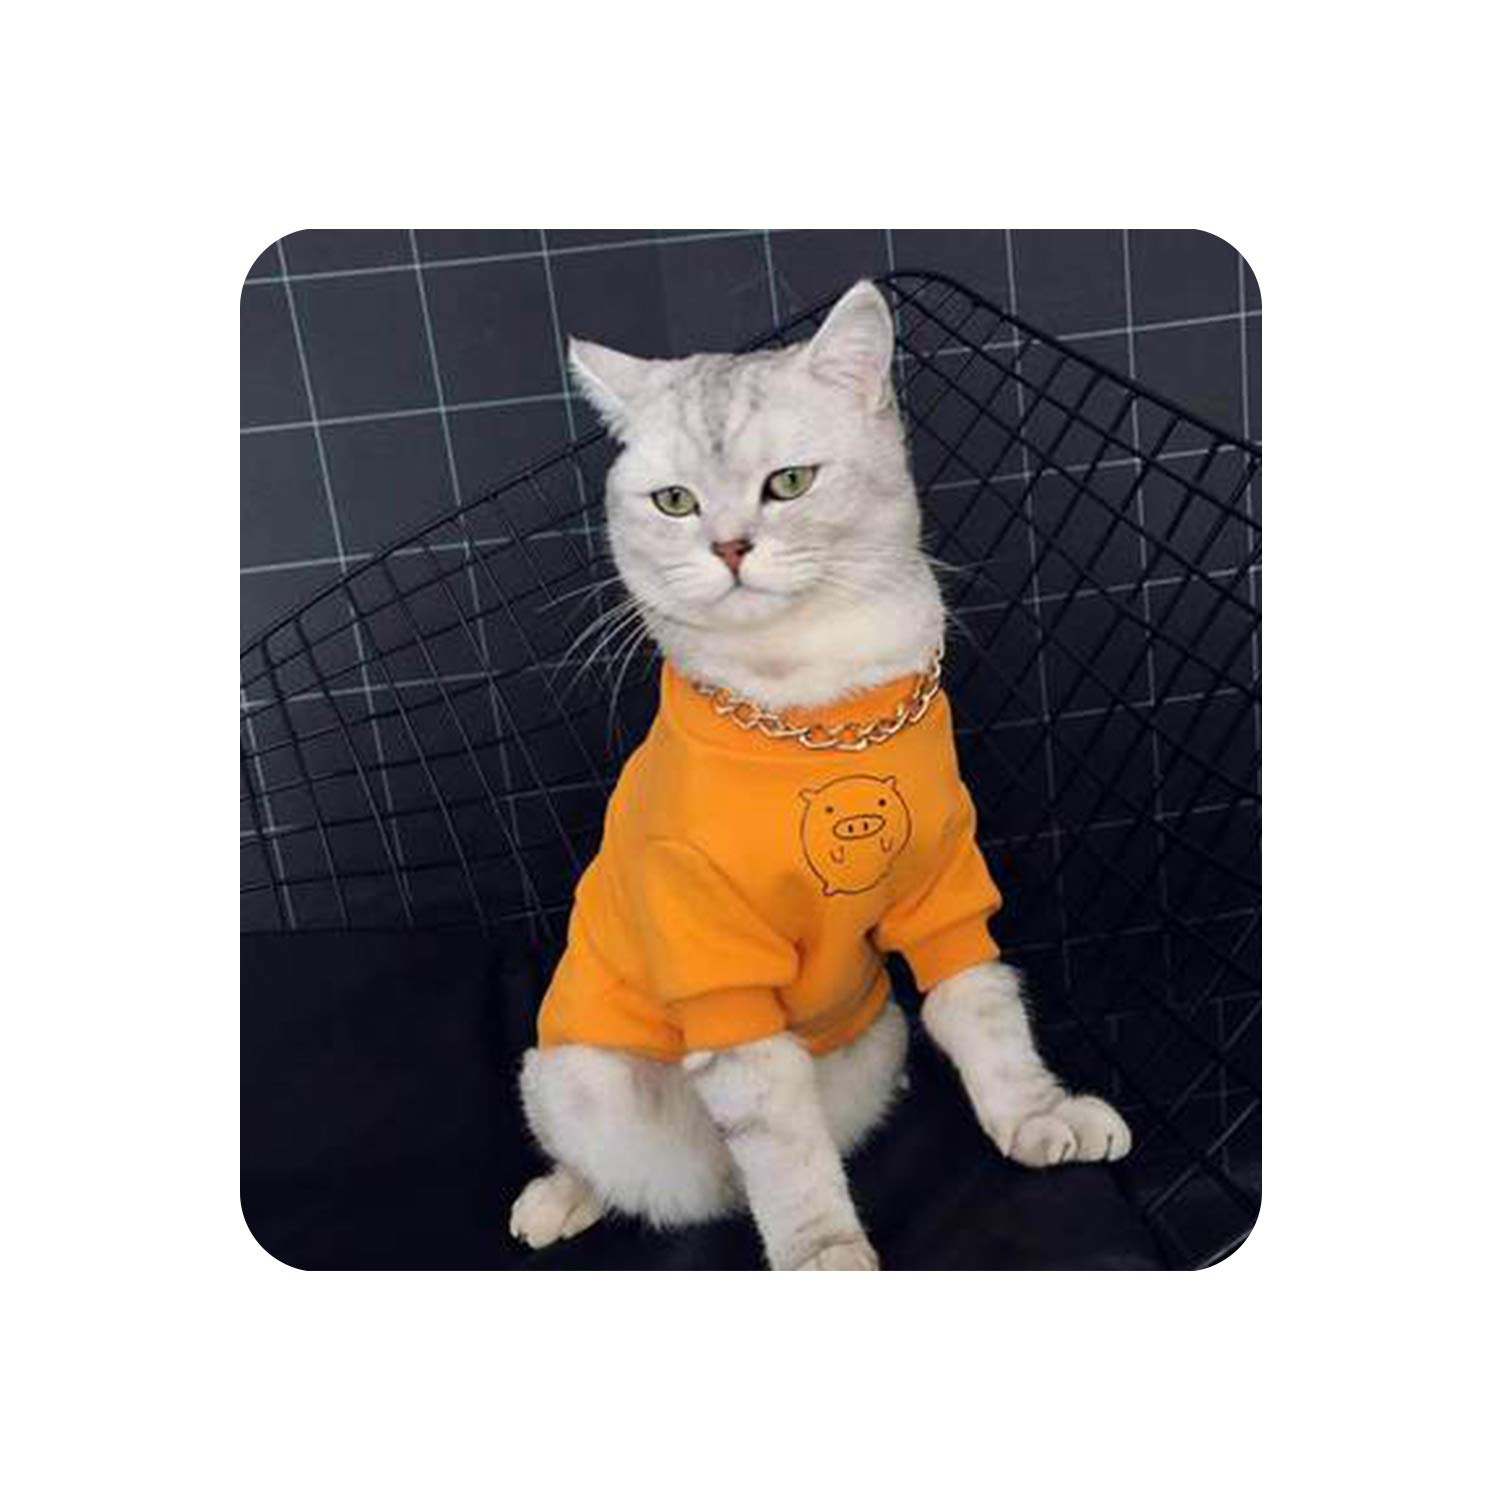 Encounter_meet Kitten Clothes Cat Sweater for A Cat Cats Clothing for Pets Princess Navidad Cat Clothes,Yellow,L